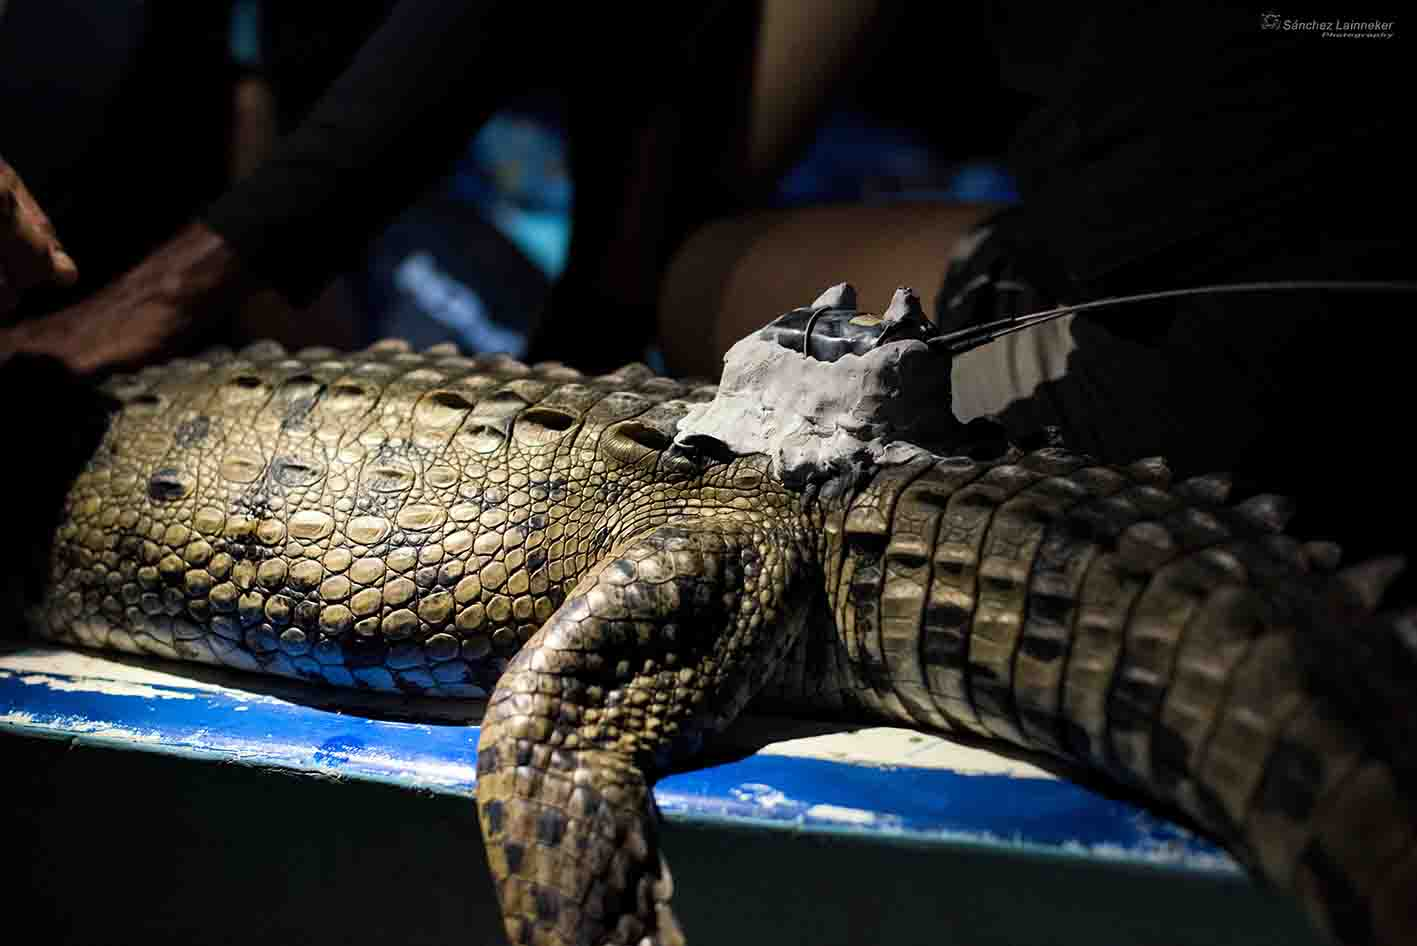 3 GPS loggers were set up in 2 crocs and 1 caiman